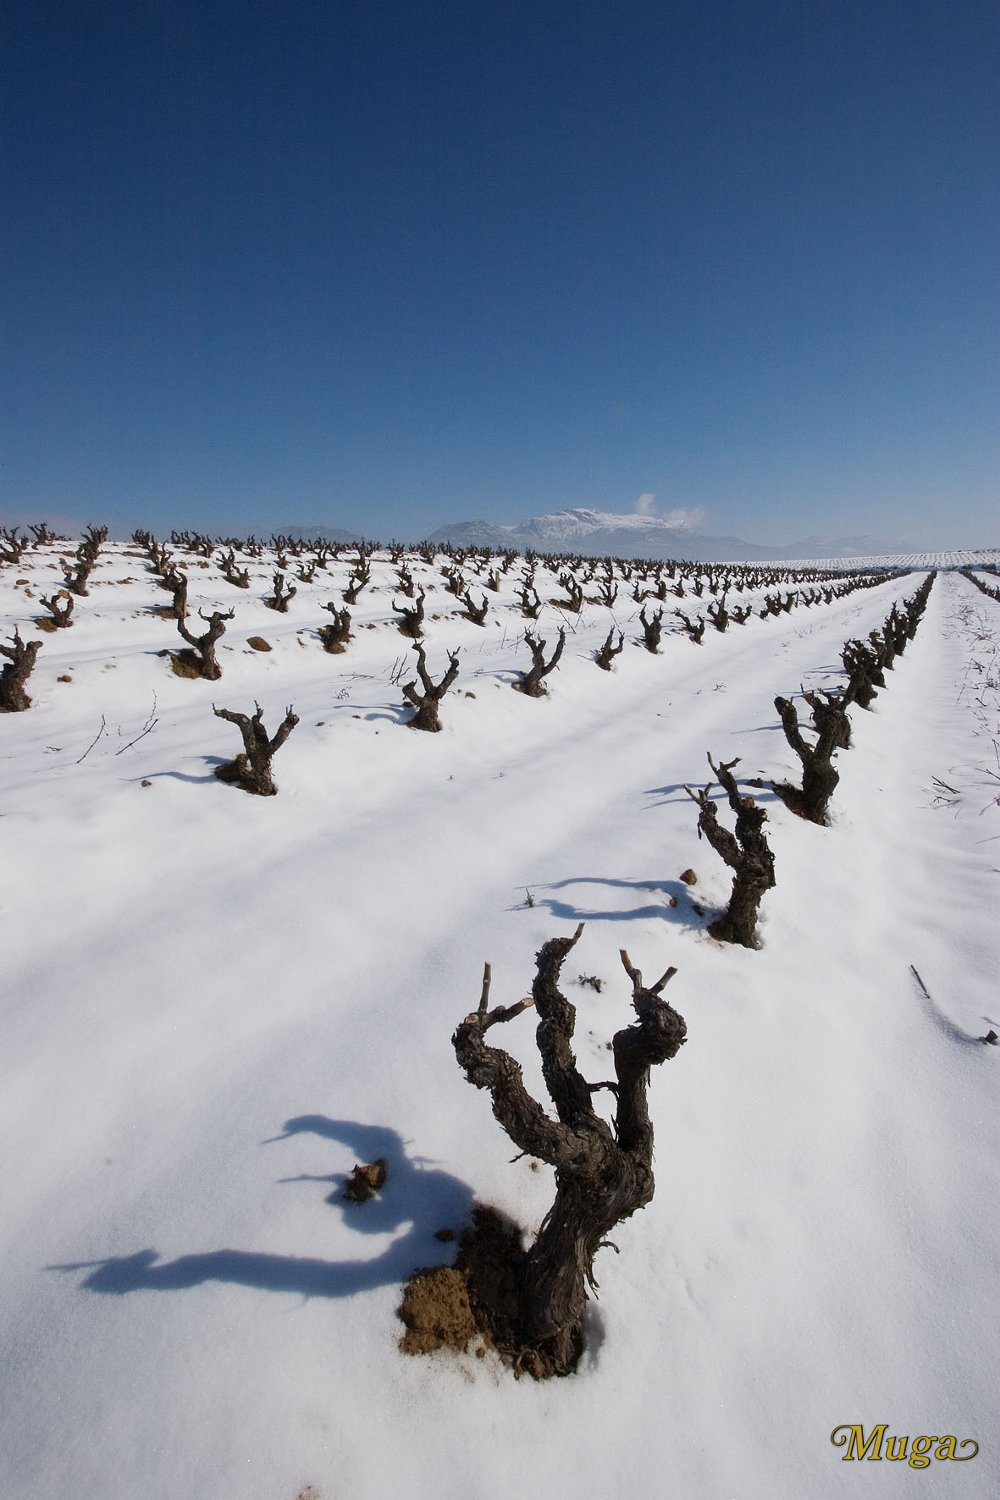 High altitude vineyards have cold winters